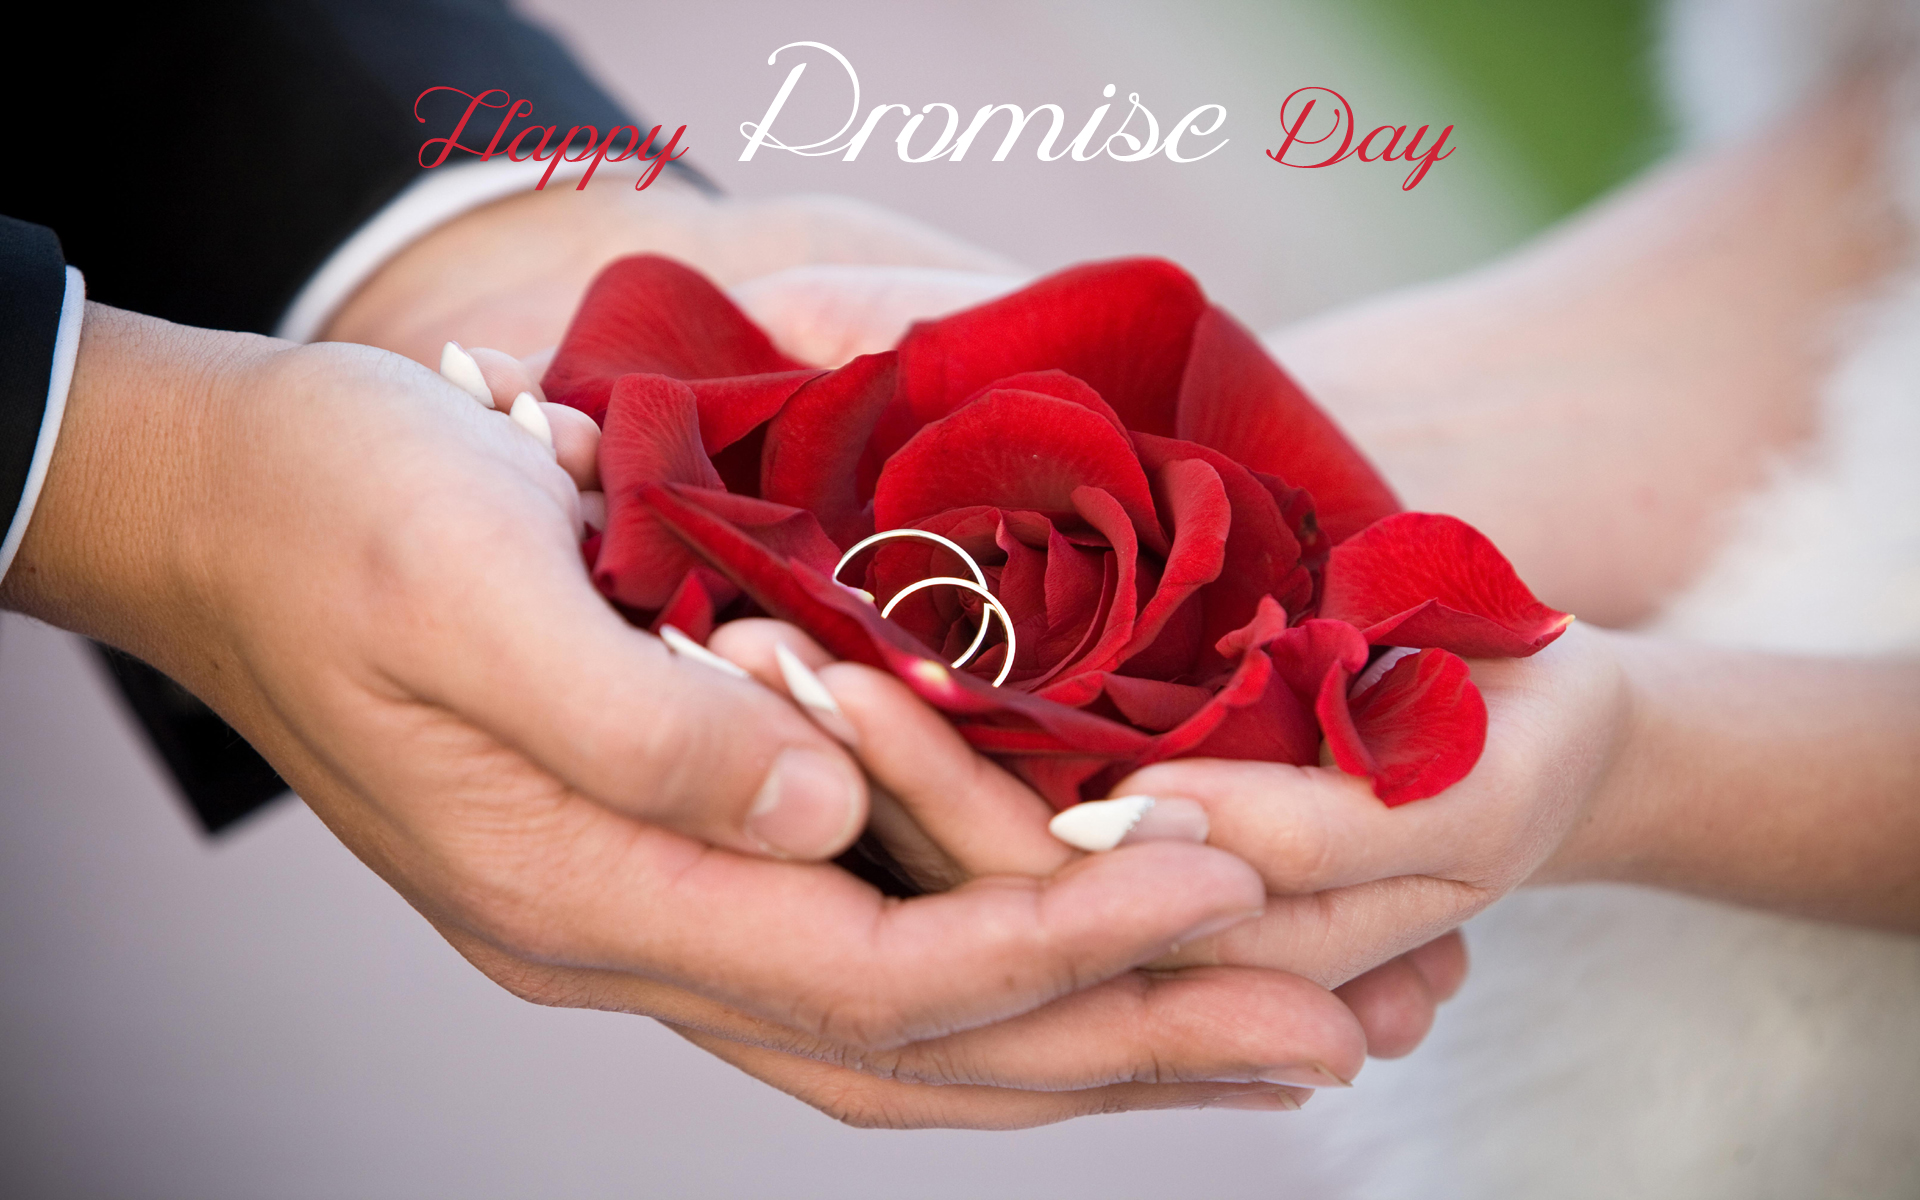 Happy-Promise-Day-Flowers-For-You